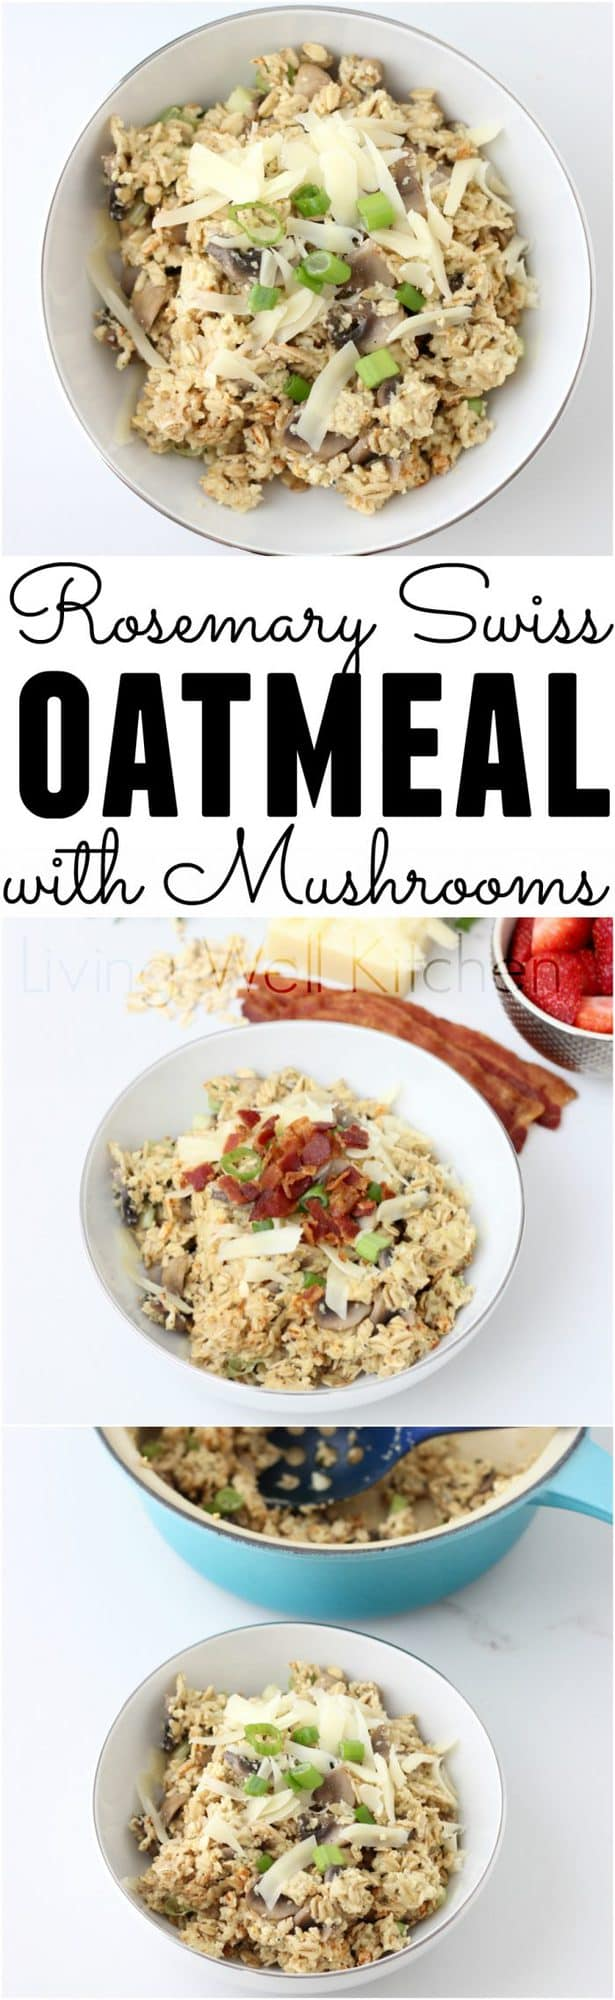 Rosemary Swiss Oatmeal with Mushrooms from @memeinge is a delicious and budget-friendly twist on your typical breakfast food.